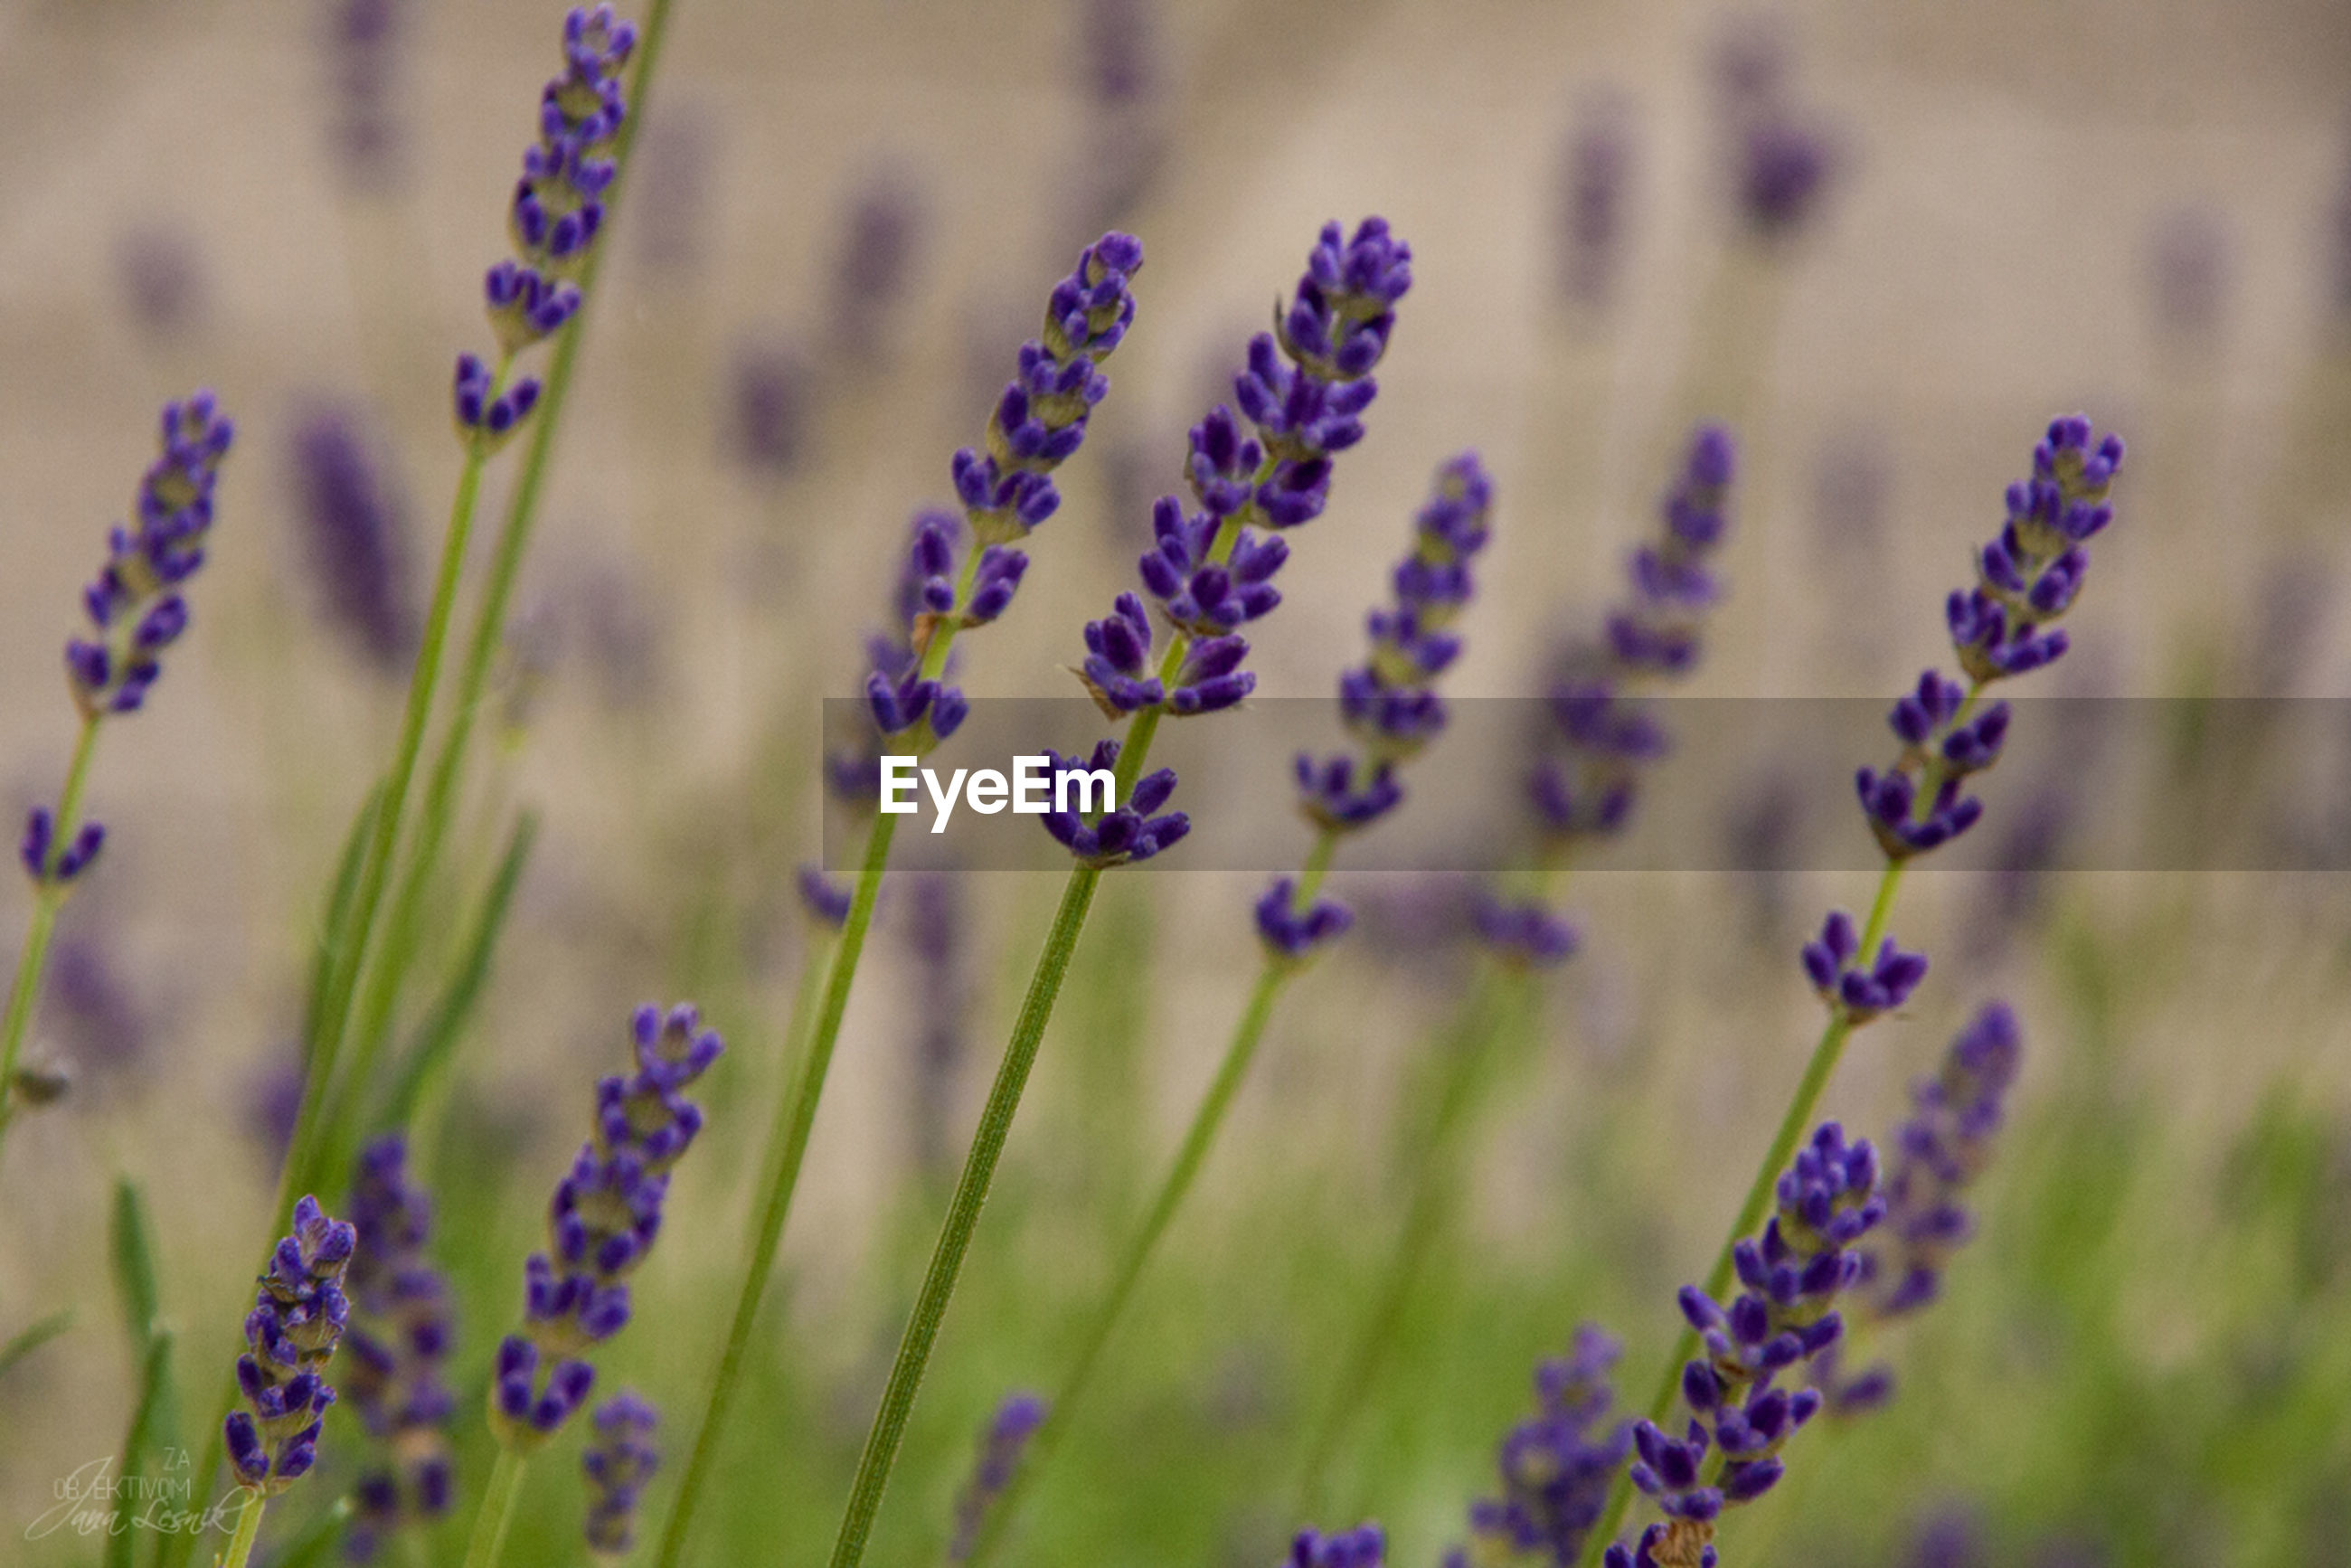 flower, purple, freshness, growth, fragility, focus on foreground, plant, stem, beauty in nature, close-up, nature, selective focus, field, blooming, petal, blue, wildflower, in bloom, day, lavender